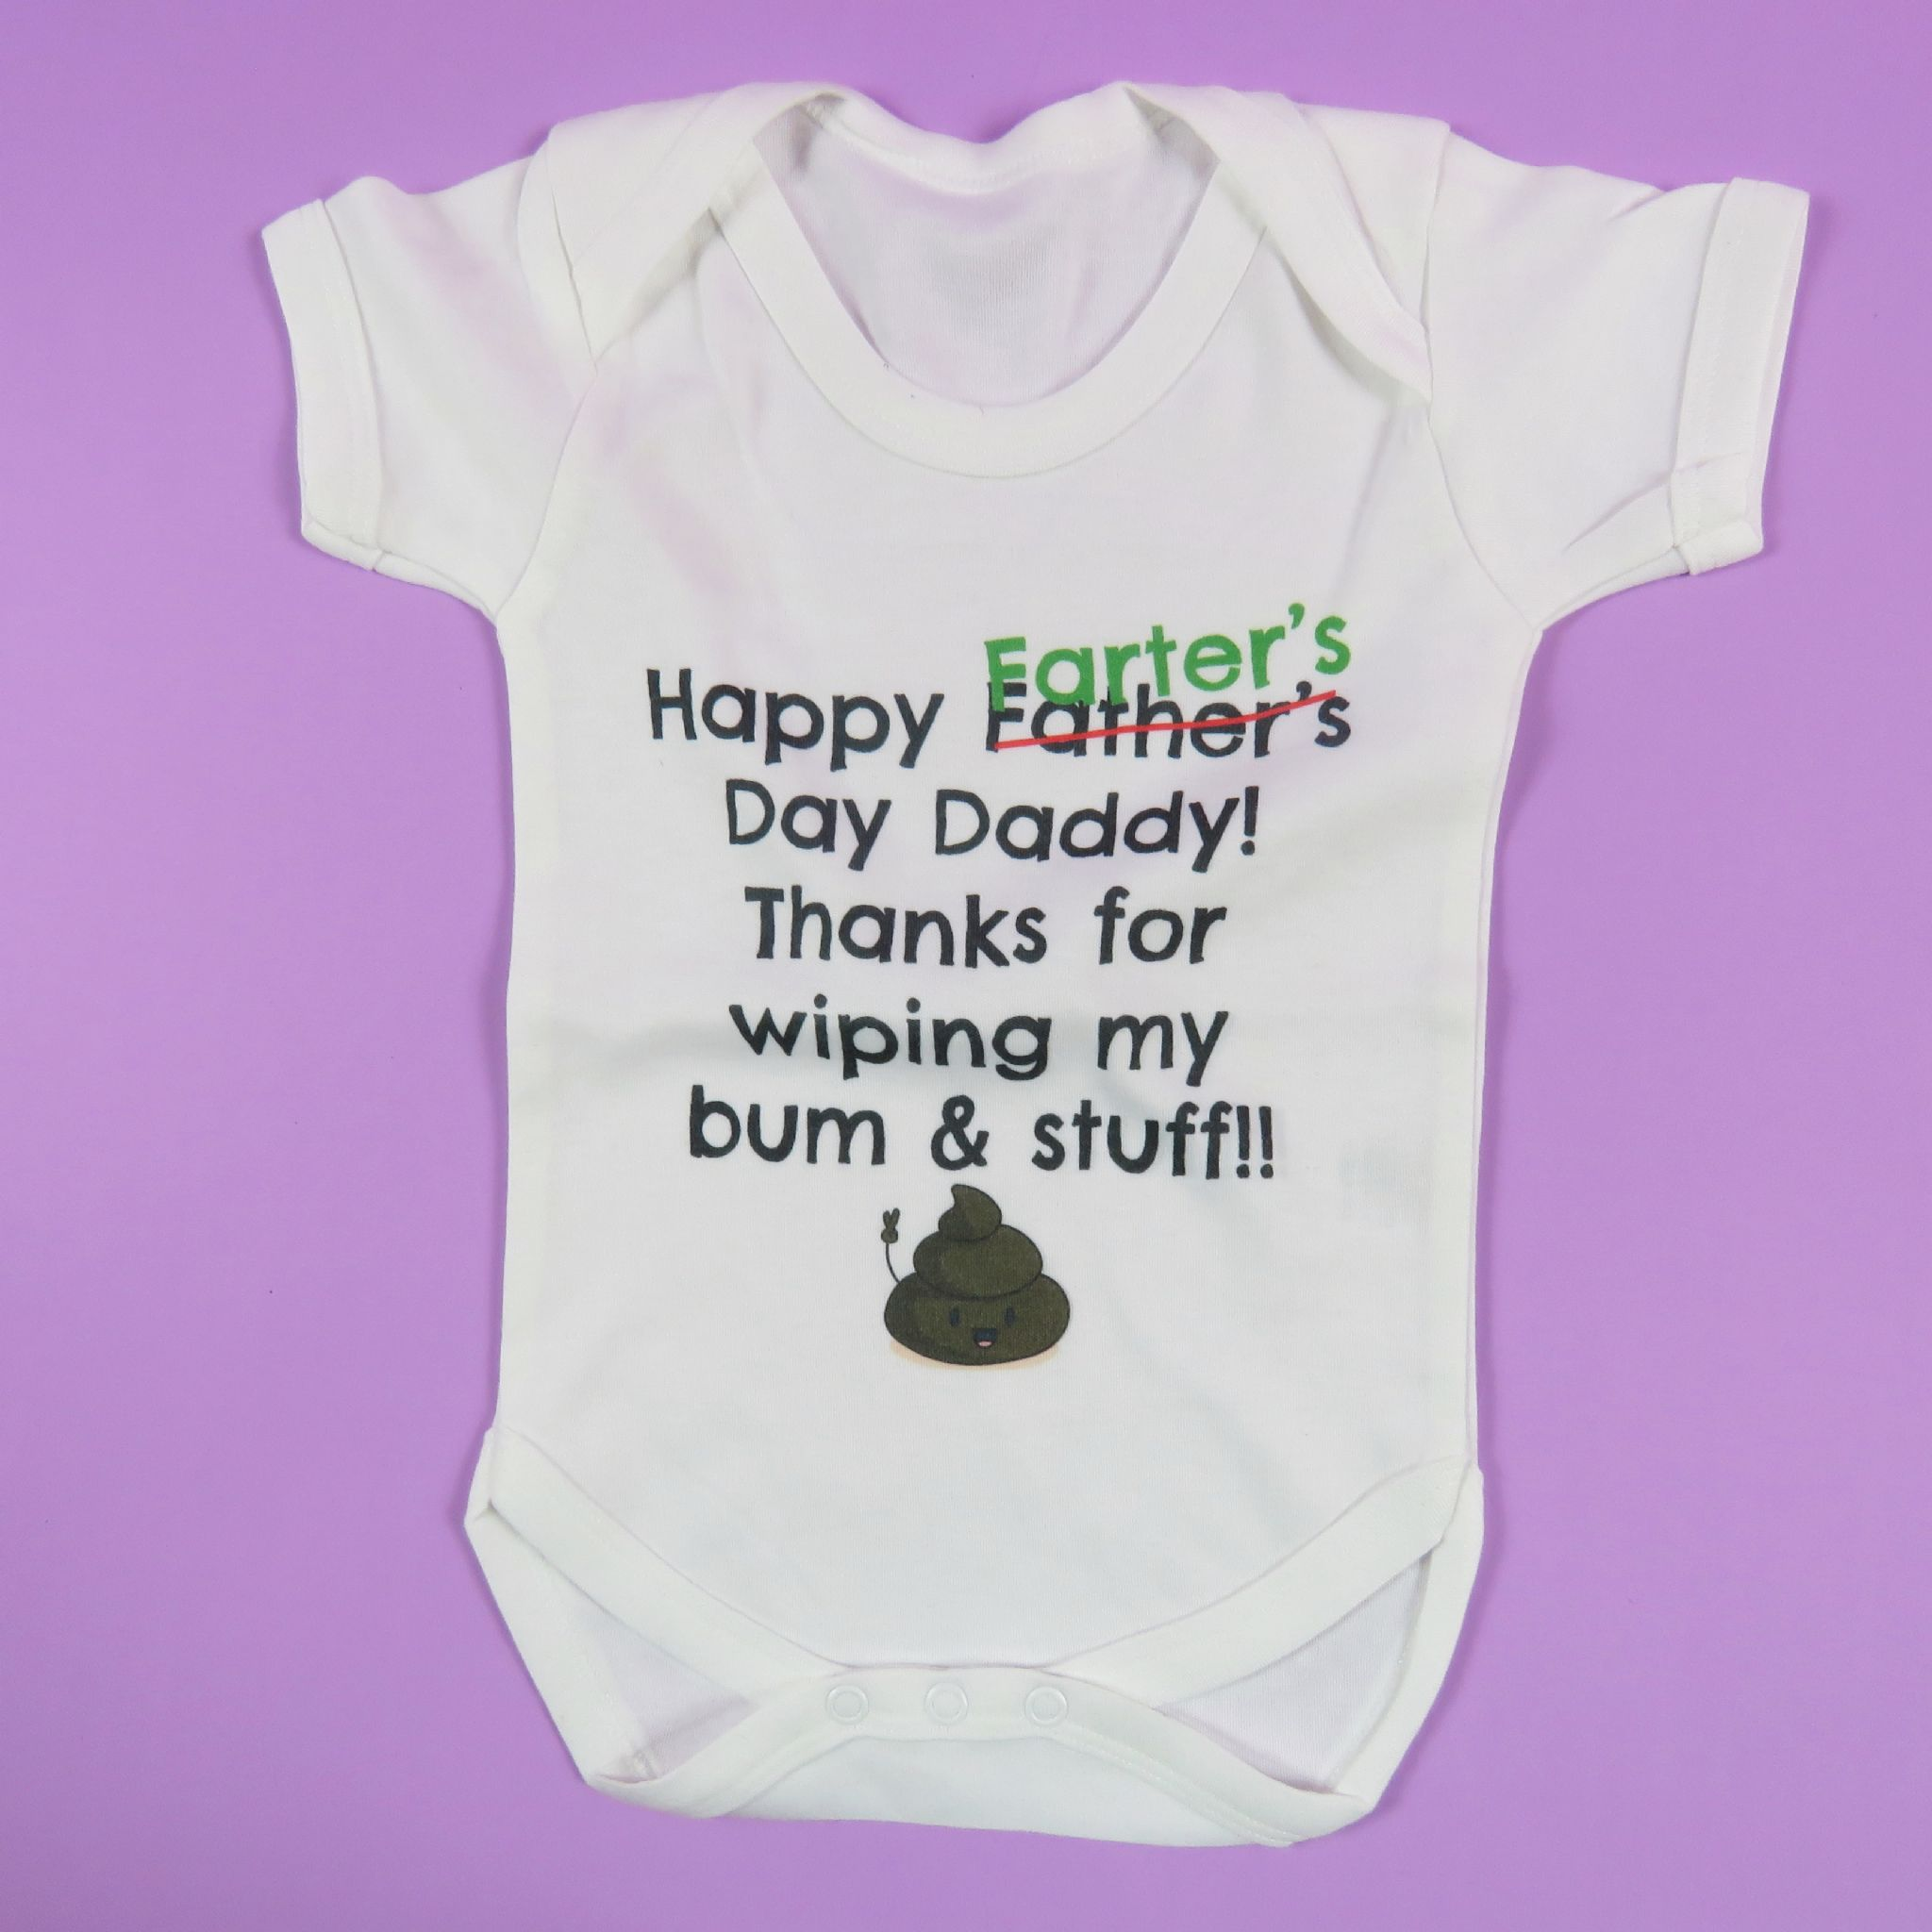 Worlds Best Farter Mean Father Thanks For Wiping Bum Dad Baby Vest Birthday Gift First